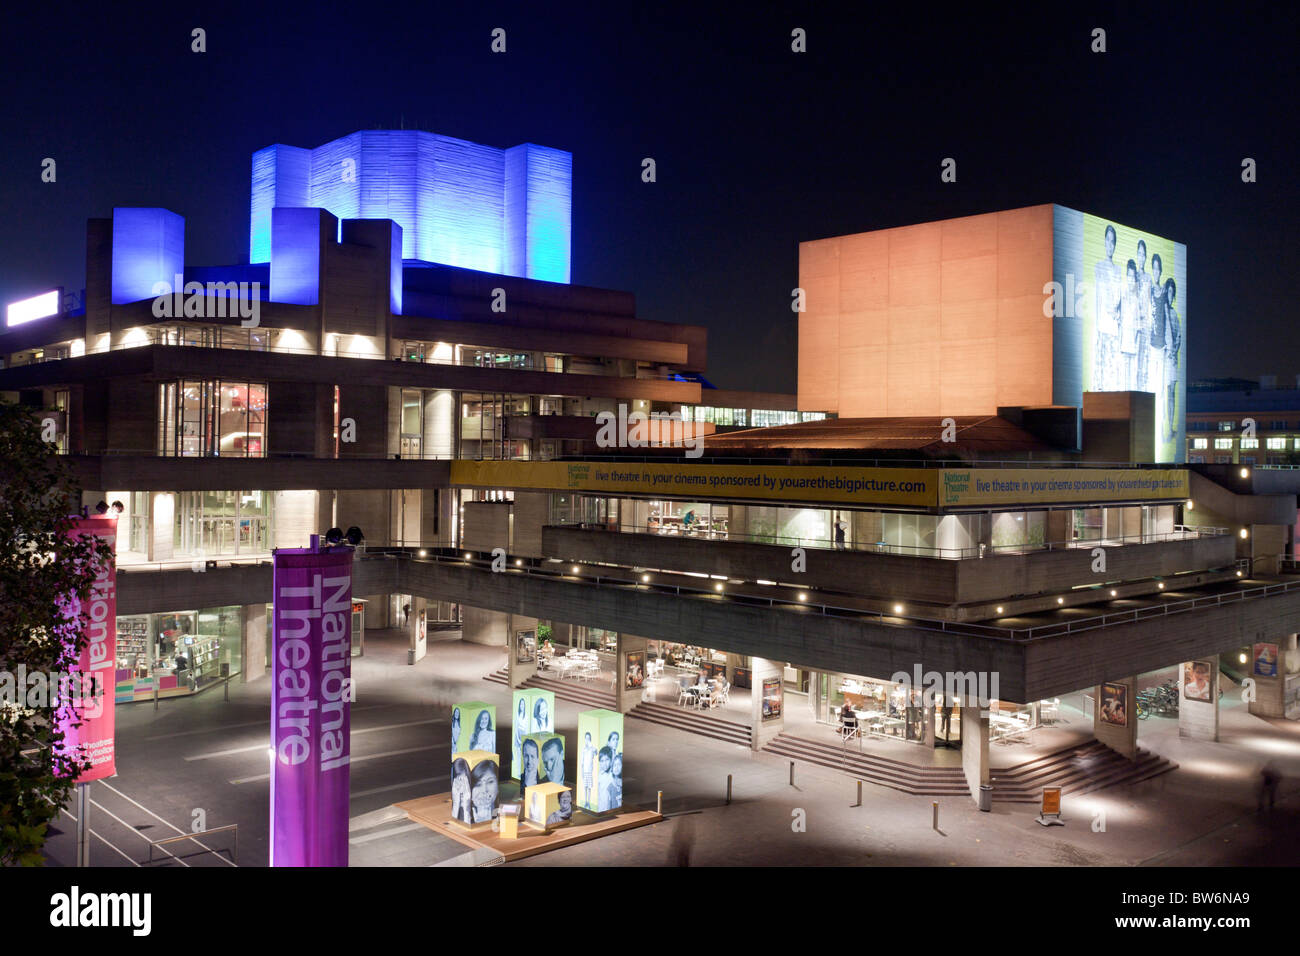 National Theatre - South Bank - London - Stock Image